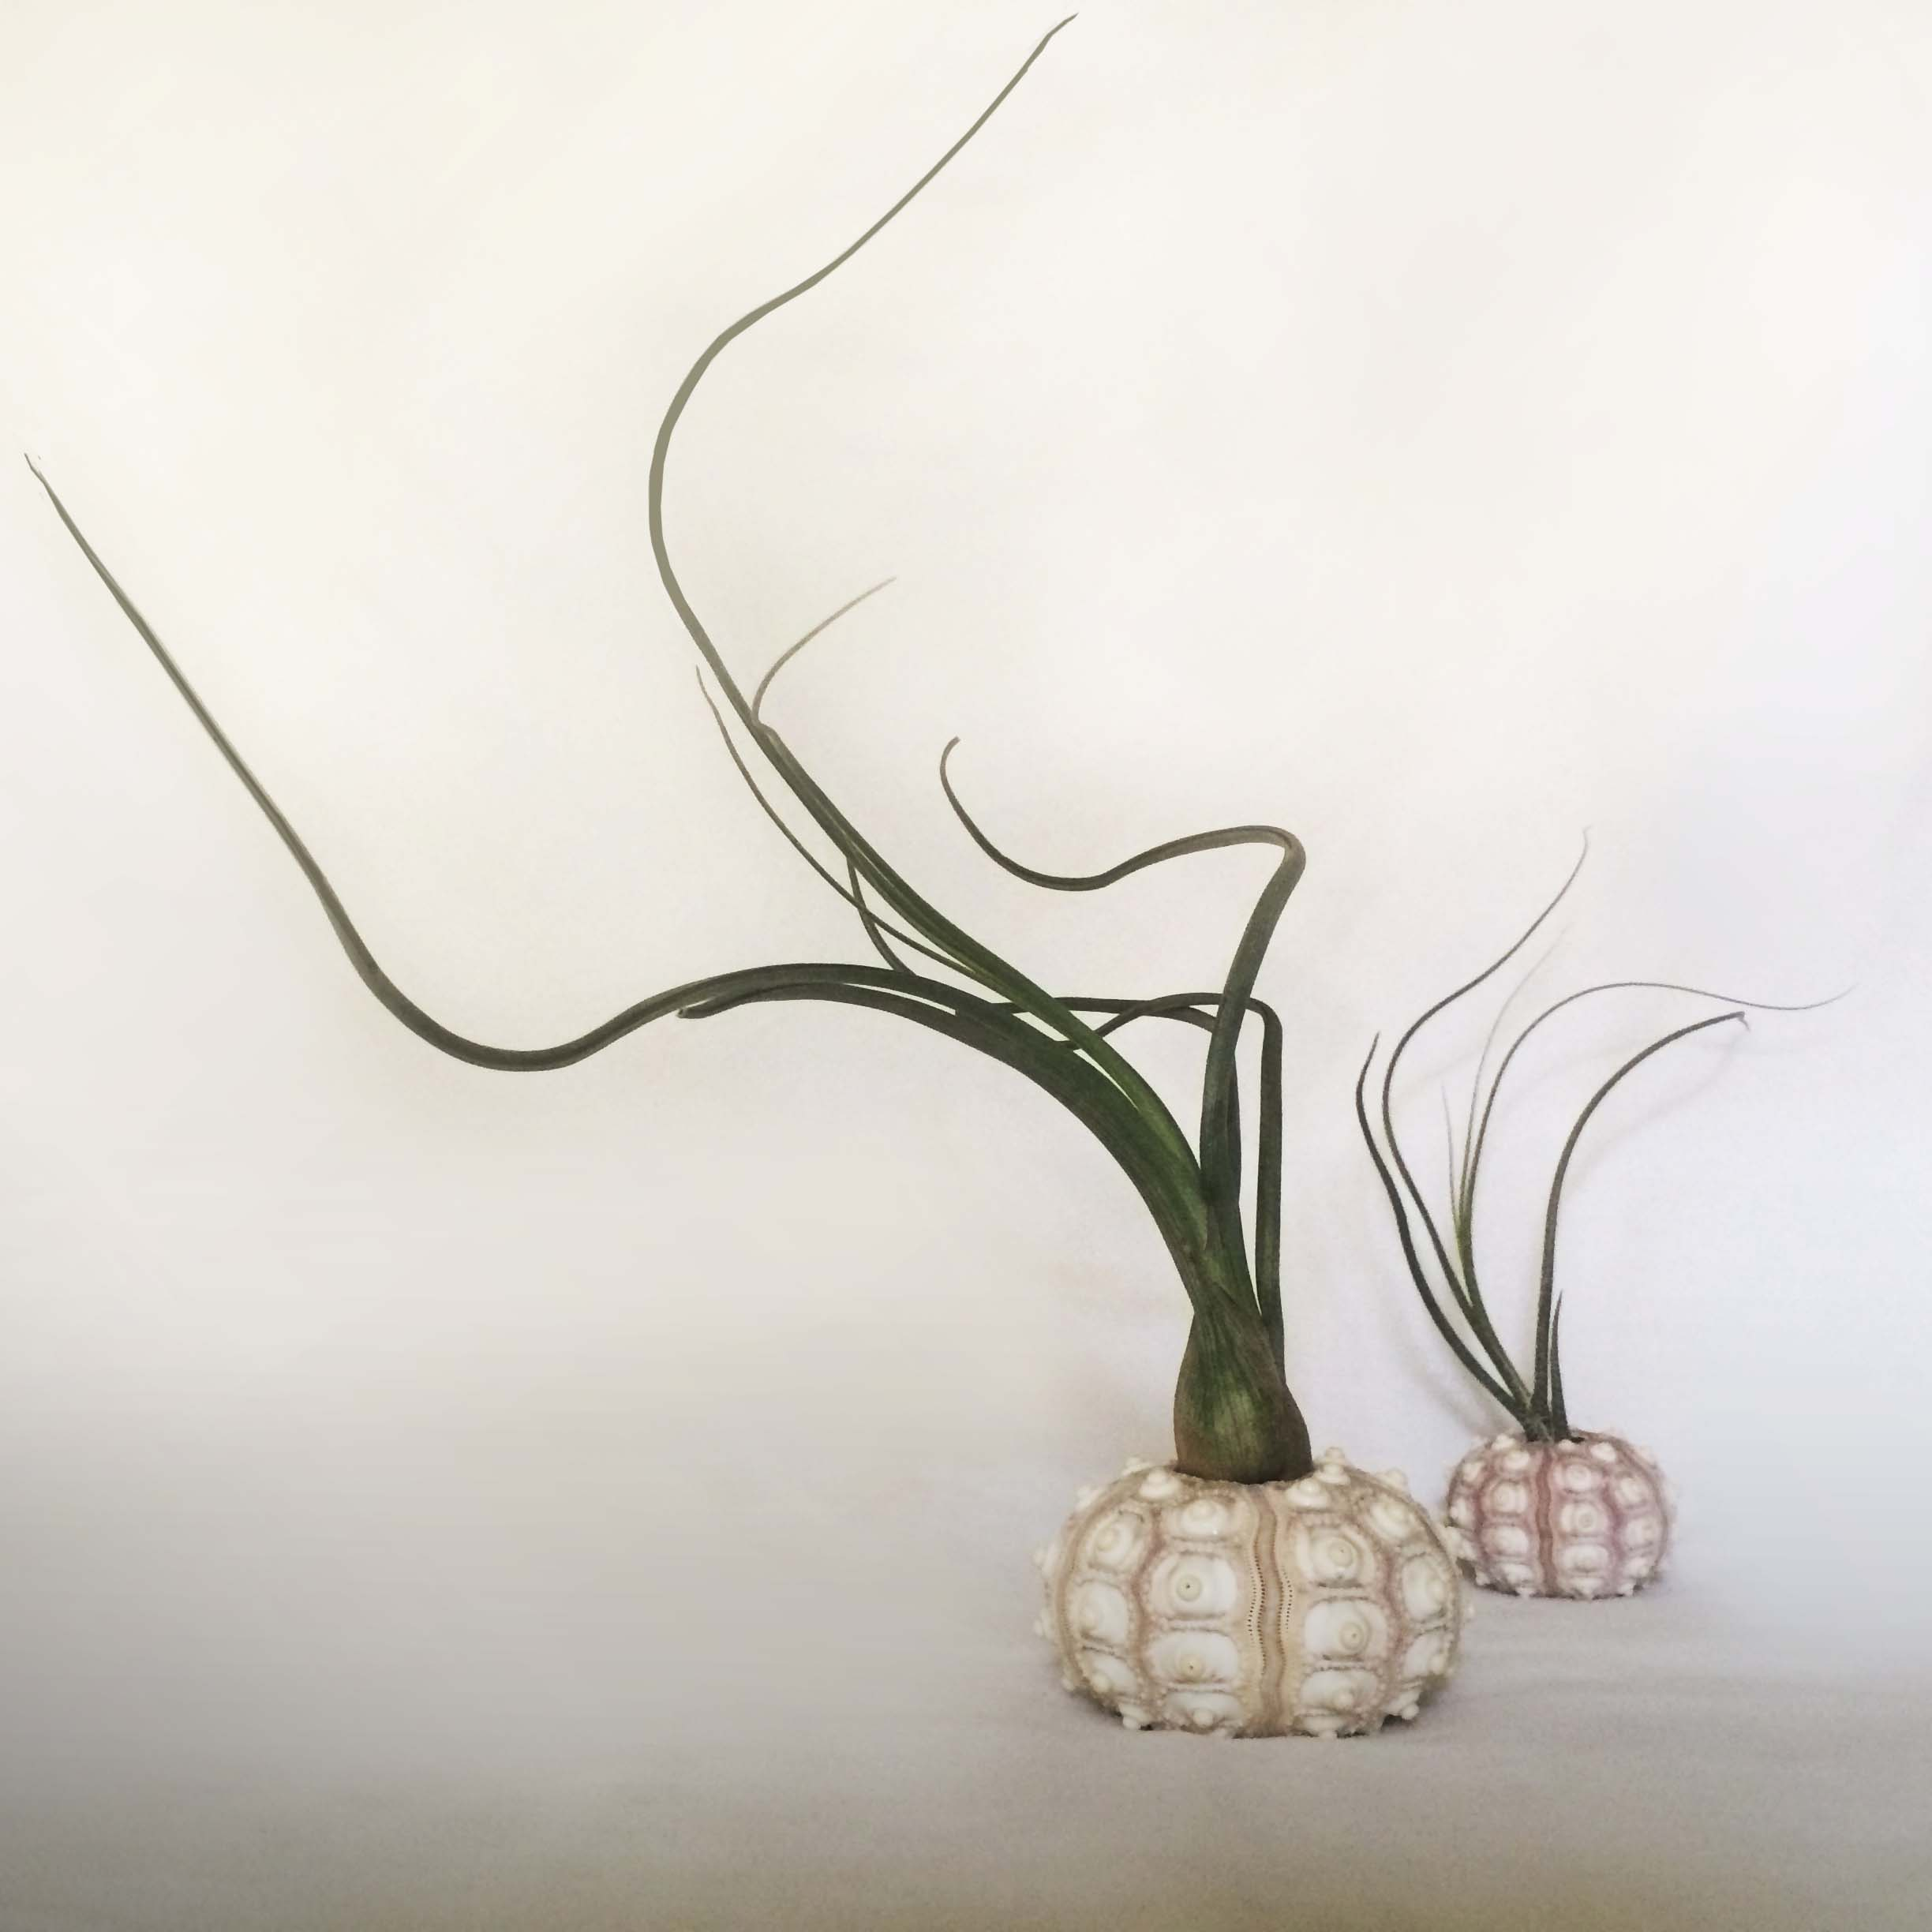 It has taken me awhile to post this, but back in october i devised a way to bring the ocean vibe to atlanta in the shape of  air plant jellyfish in small sea urchin shells . air plants are known as ' tillandsia ' and don't require any soil to grow. They get all of the water and nutrients they need through tiny vessels located throughout their specialized leaves, called  trichomes,  which capture nutrients and moisture from the air. Air plants use their roots only to anchor themselves to rocks, trees, shrubs and the ground. Moderate light and a good soak every couple of weeks are t  heir only requirements...   the perfect plant  <3